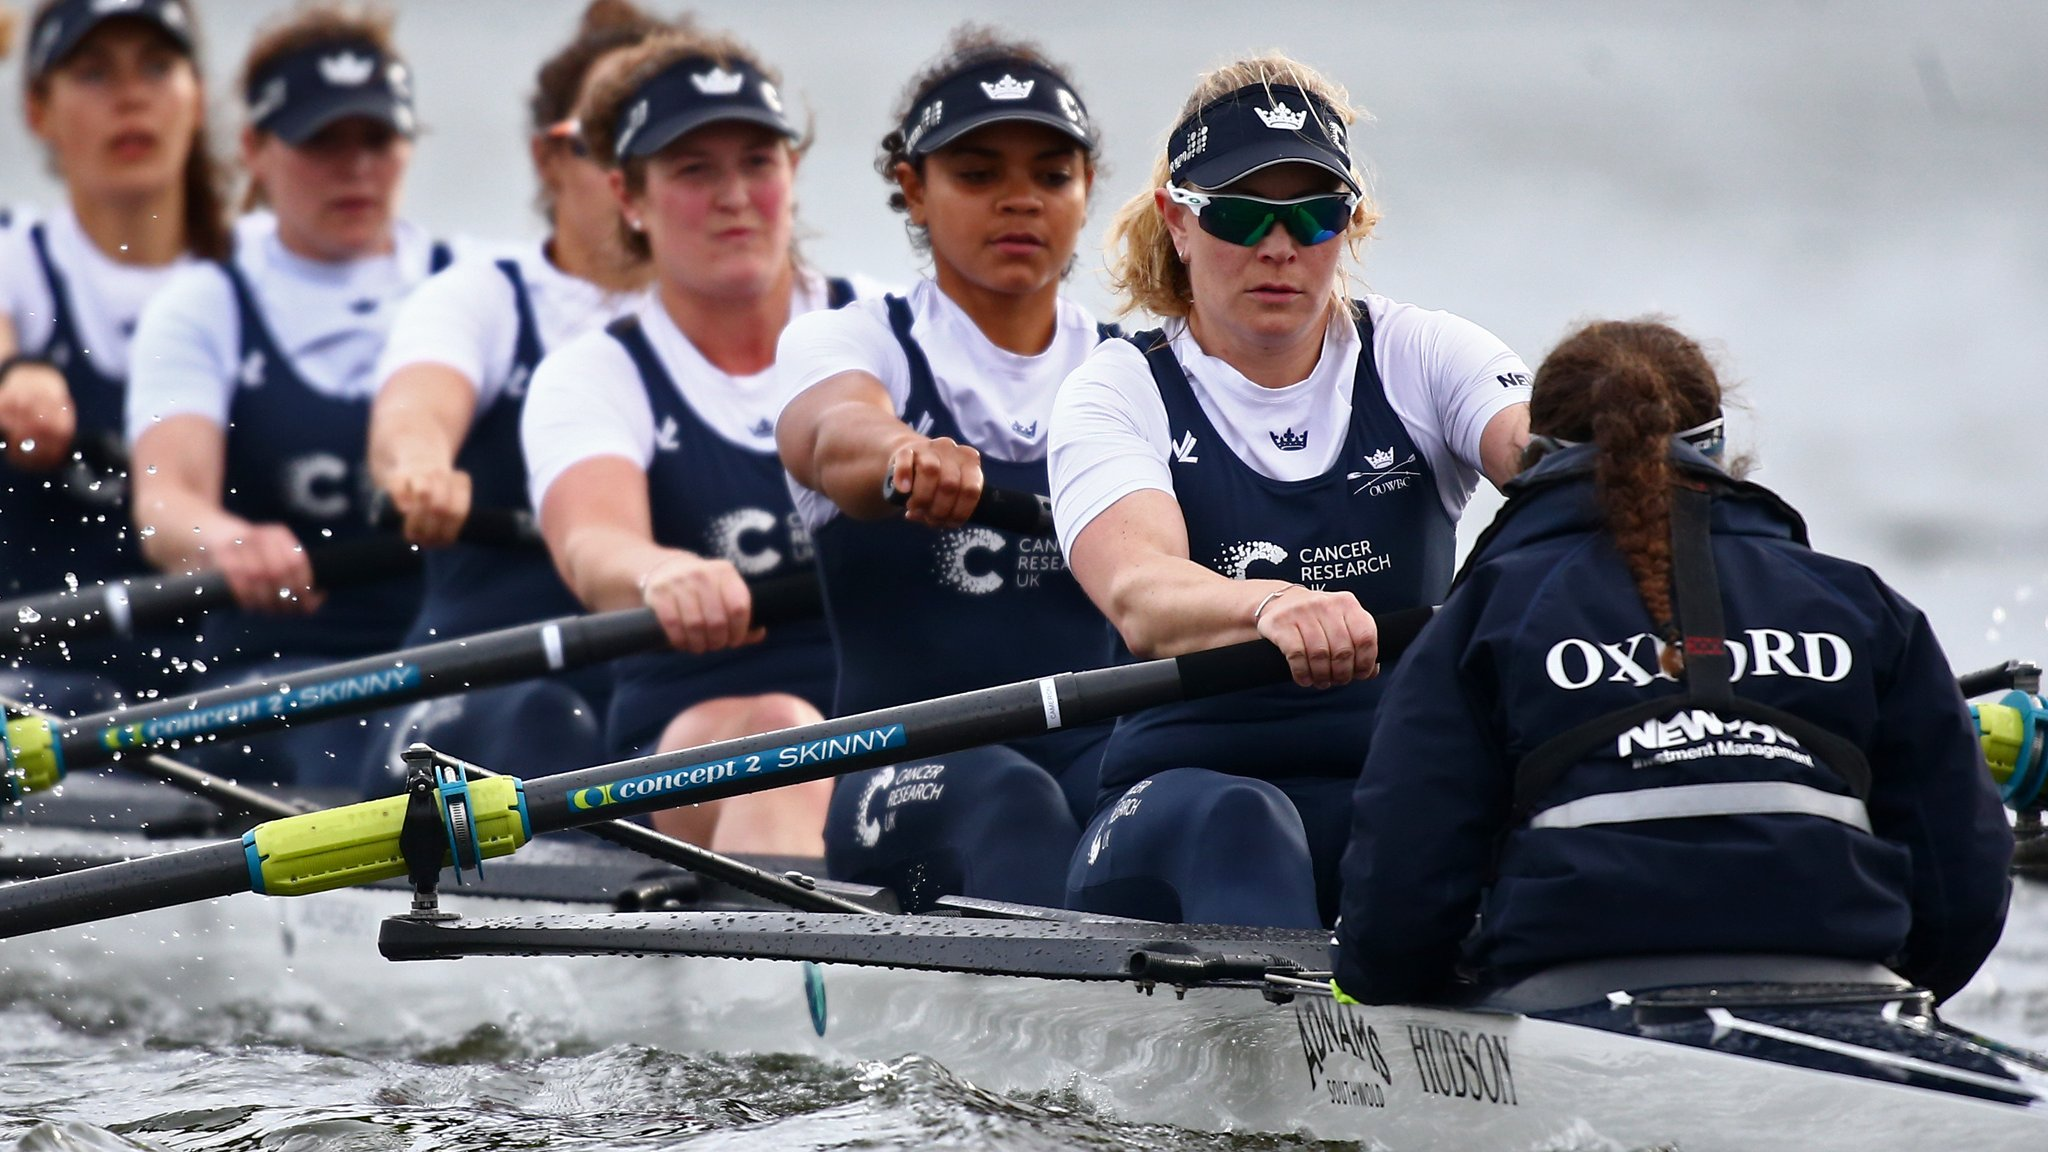 Sport on the BBC: The best of this weeks action